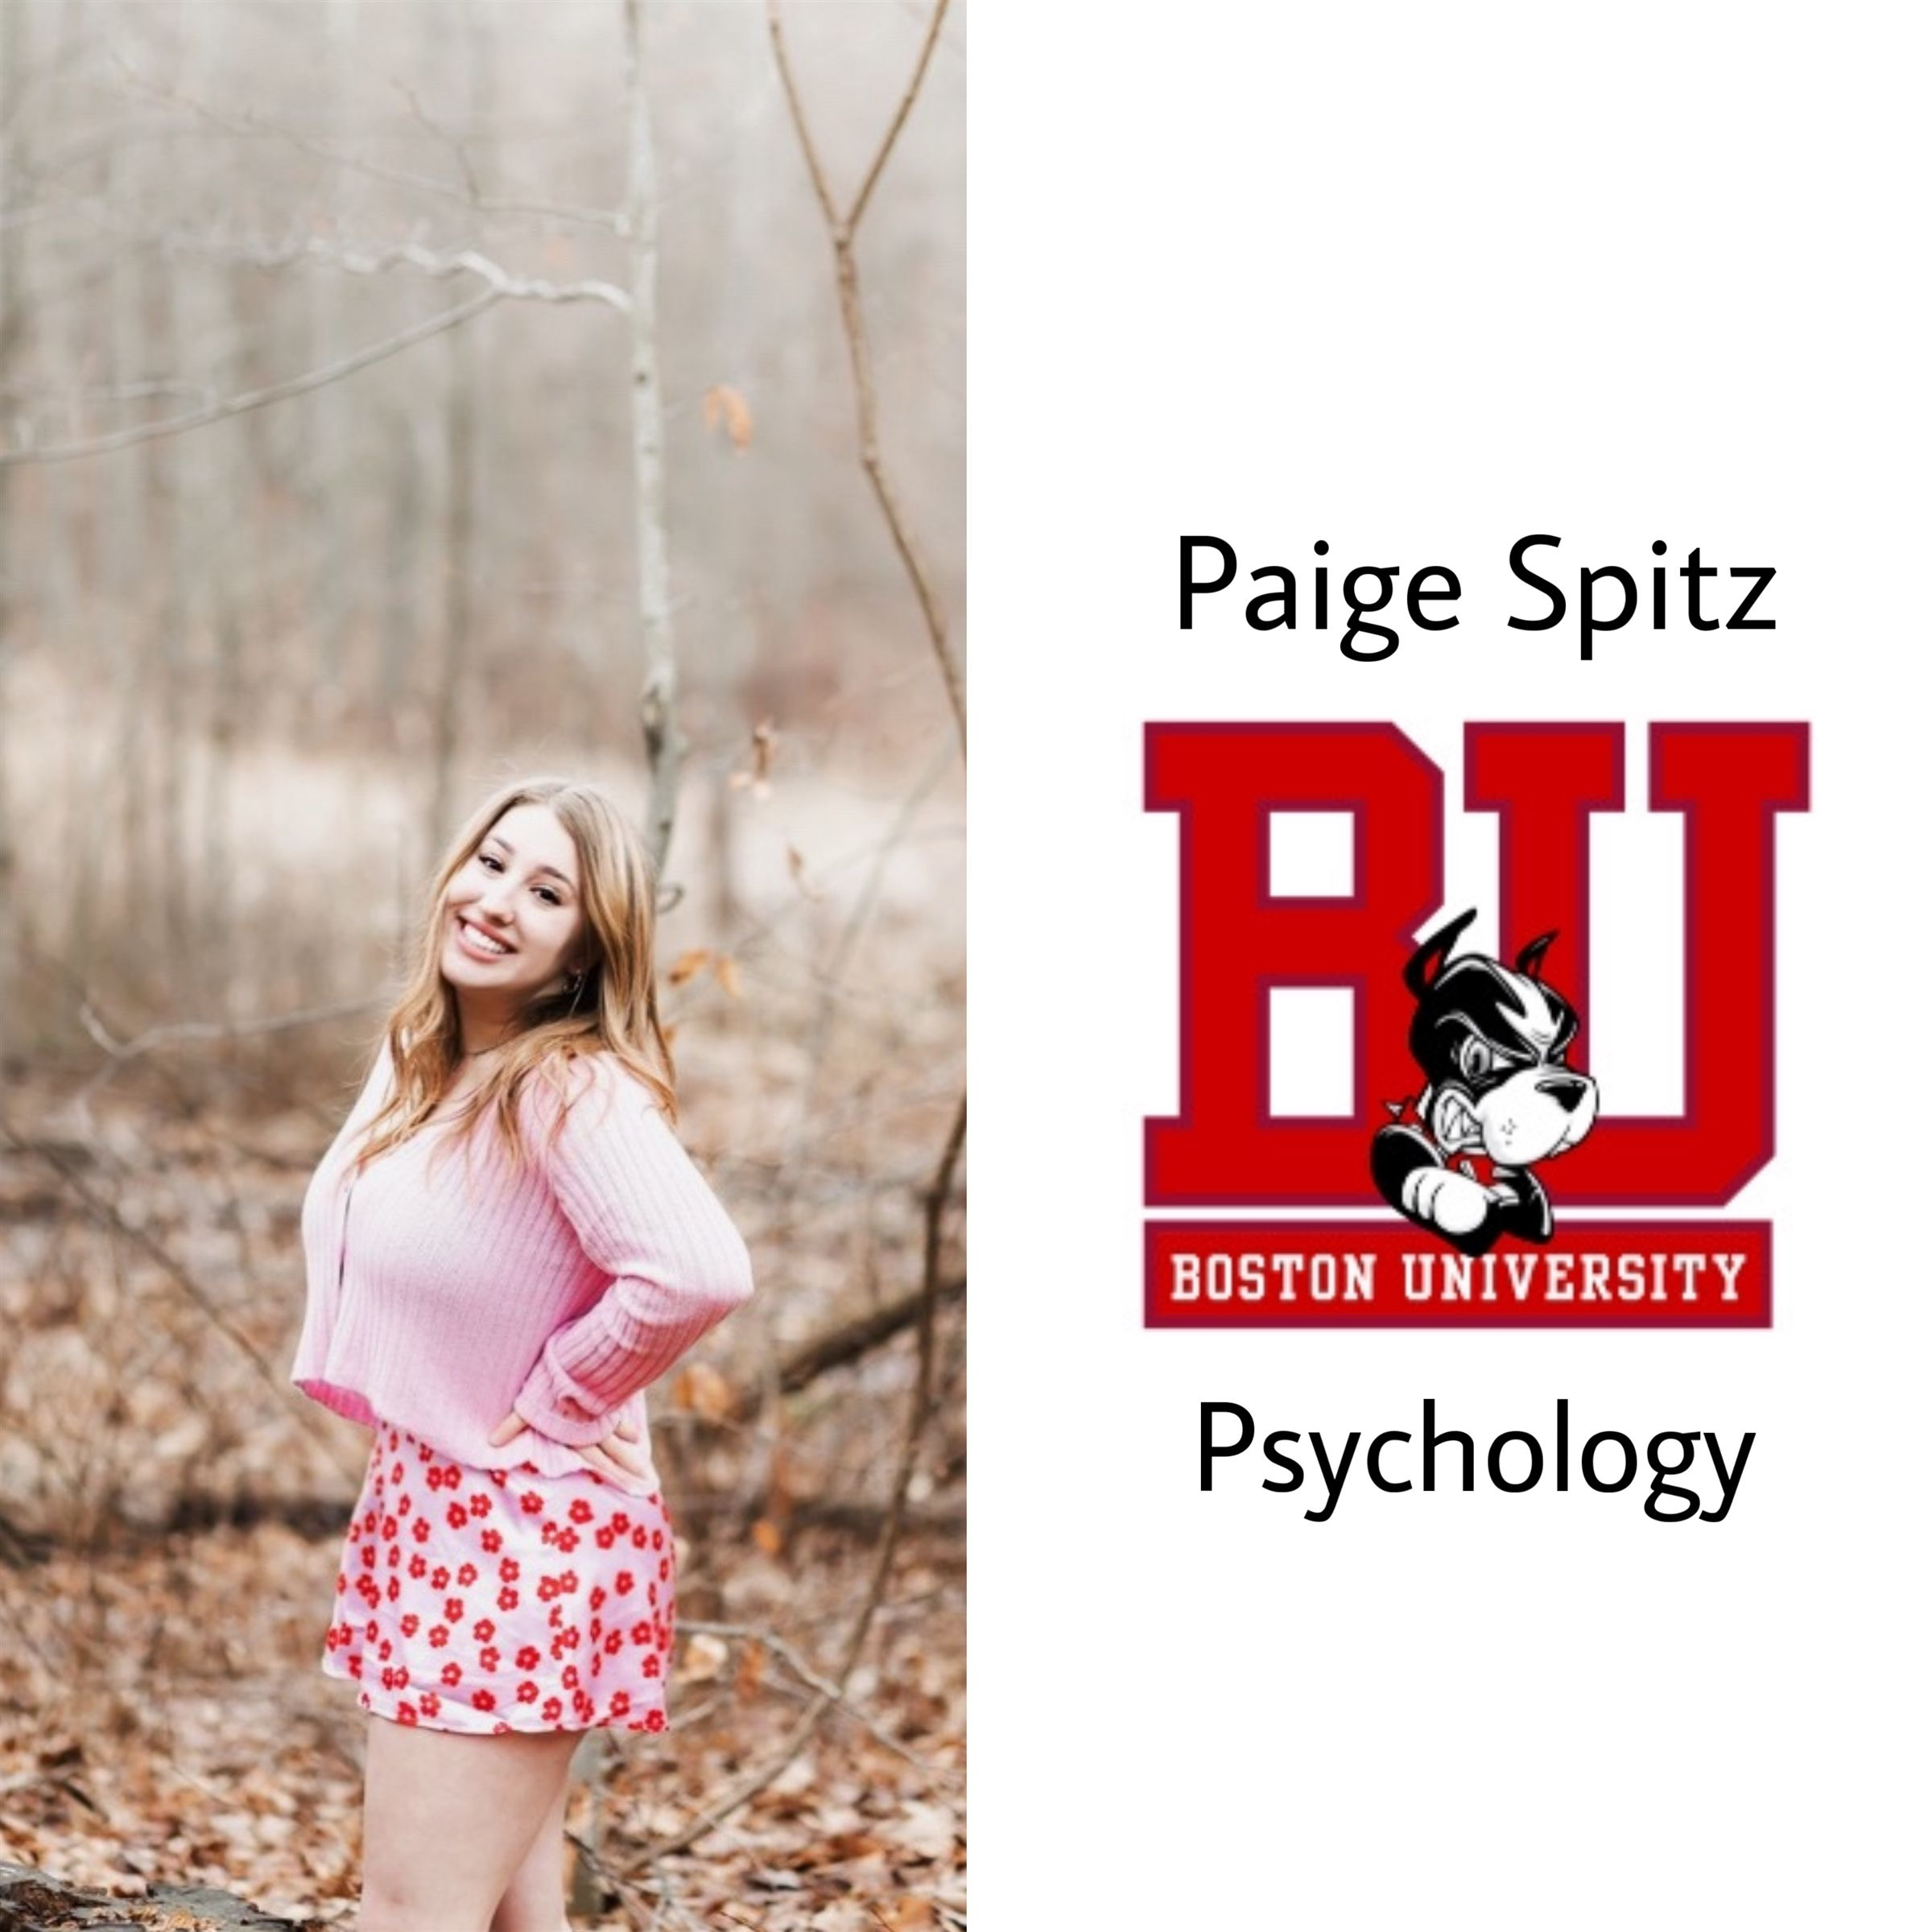 Paige will be attending Boston University next year majoring in psych! Congrats!!